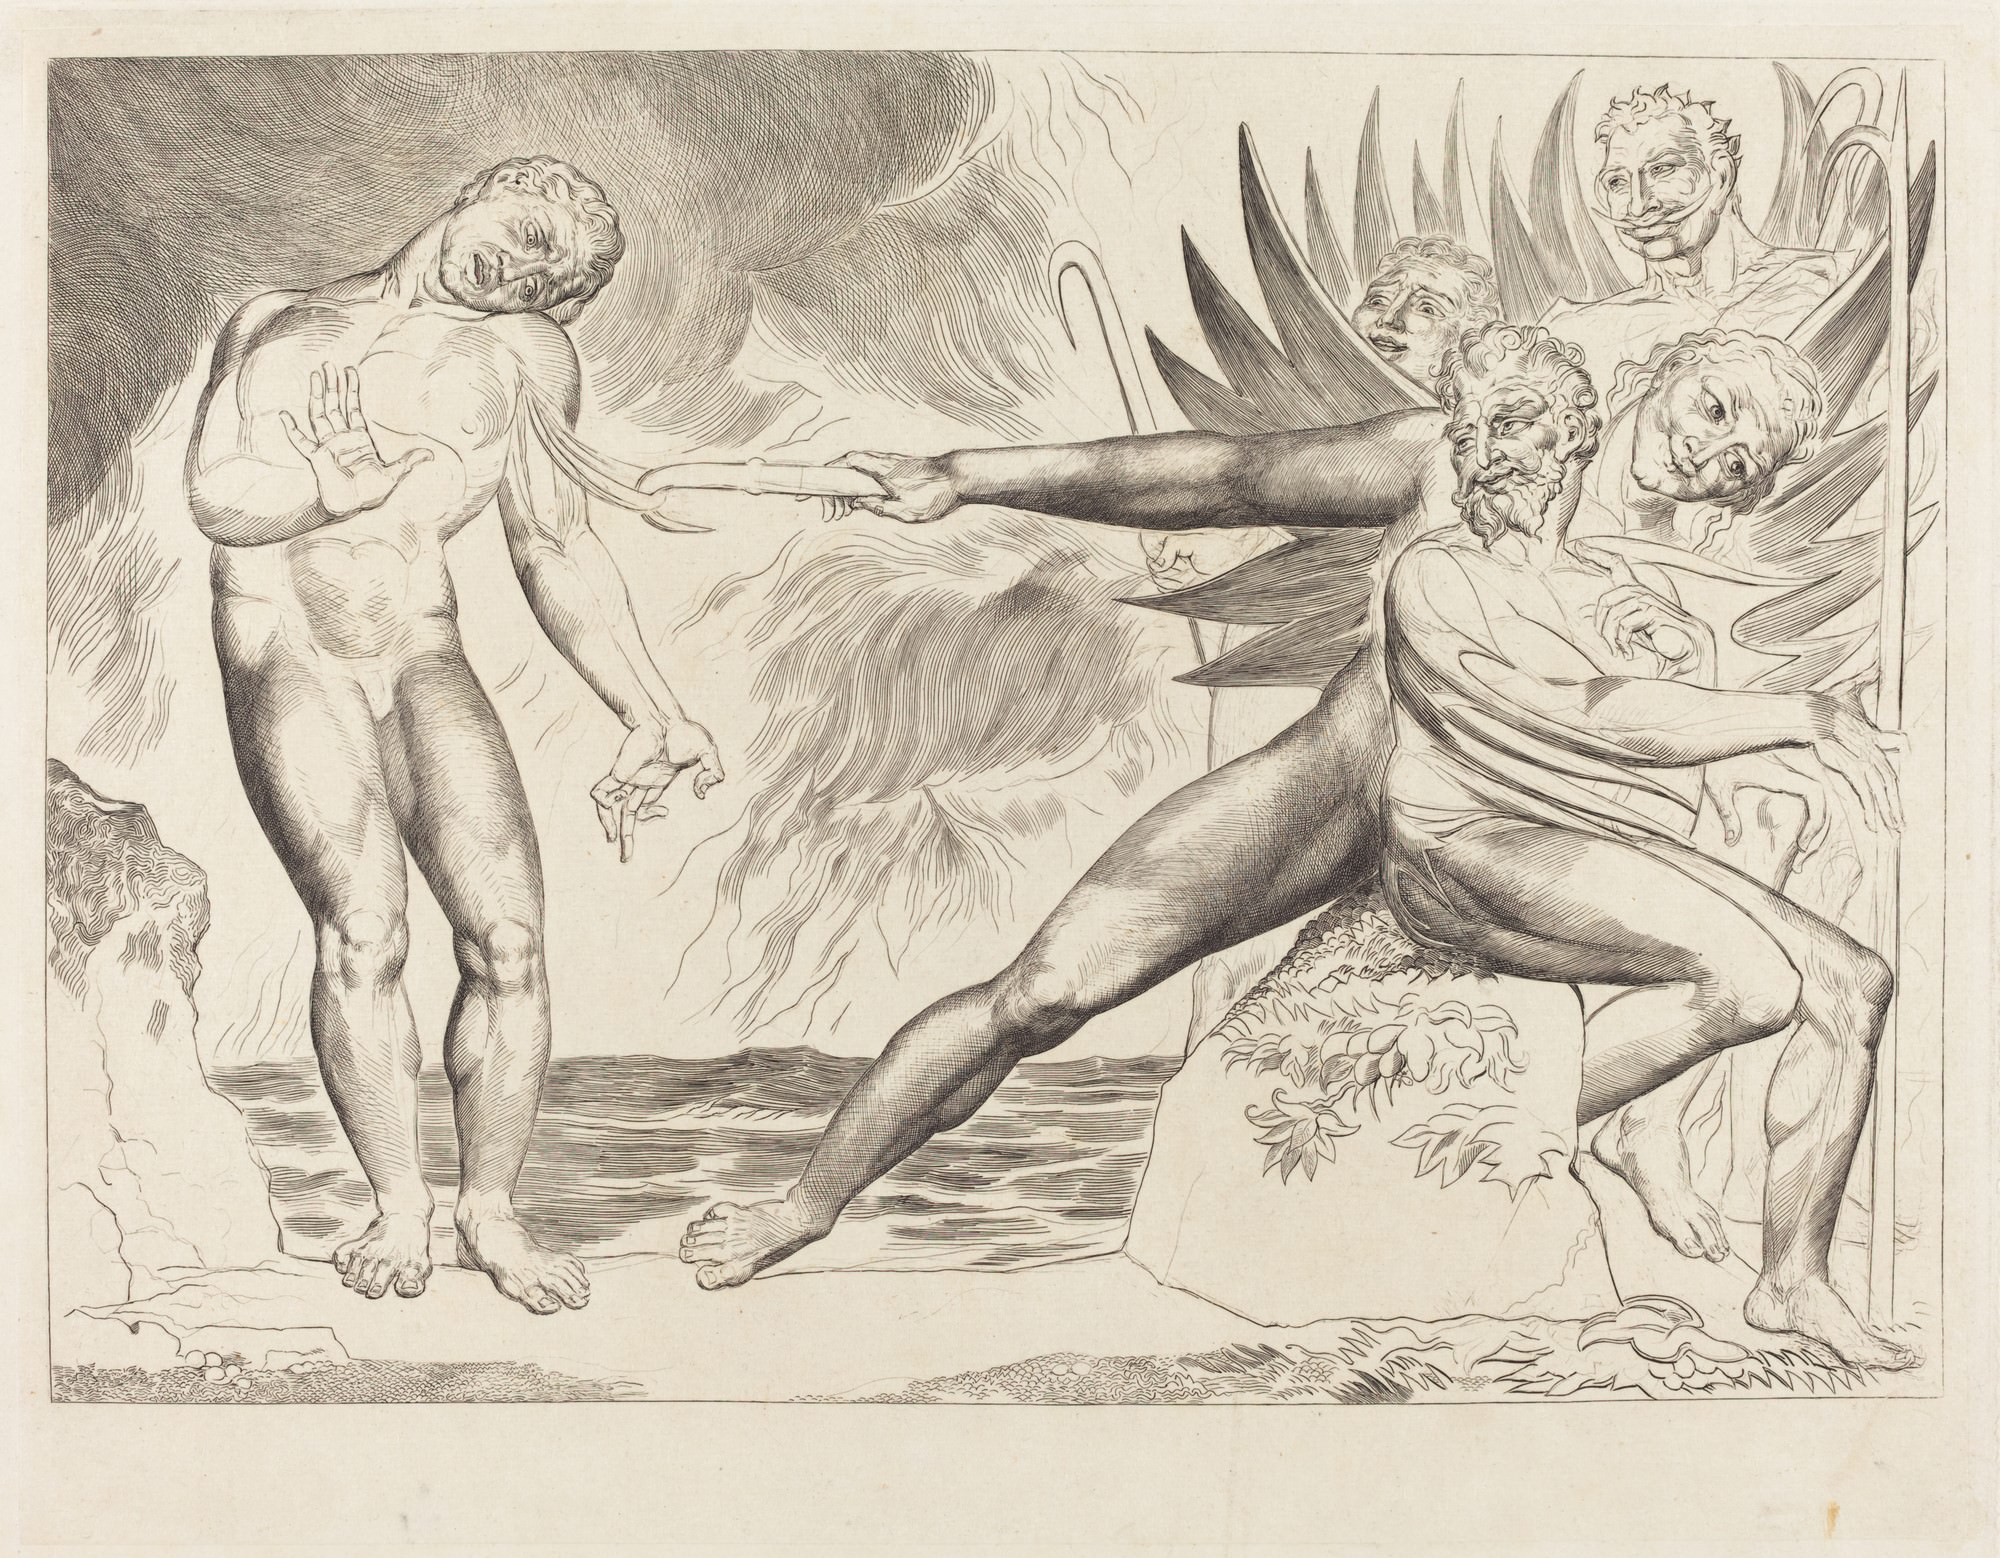 "Figue. 1 - Le Cercle des fonctionnaires corrompus; les Devils tourmentait Ciampolo, 1827. William Blake. National Gallery of Art, Washington. Collection Rosenwald. « A Arte, dit-il (Blake), la connaissance intuitive n'est pas des choses individuelles, mais les forces éternelles et surhumains de la création "". (ARGAN, 1988, p. 35)."